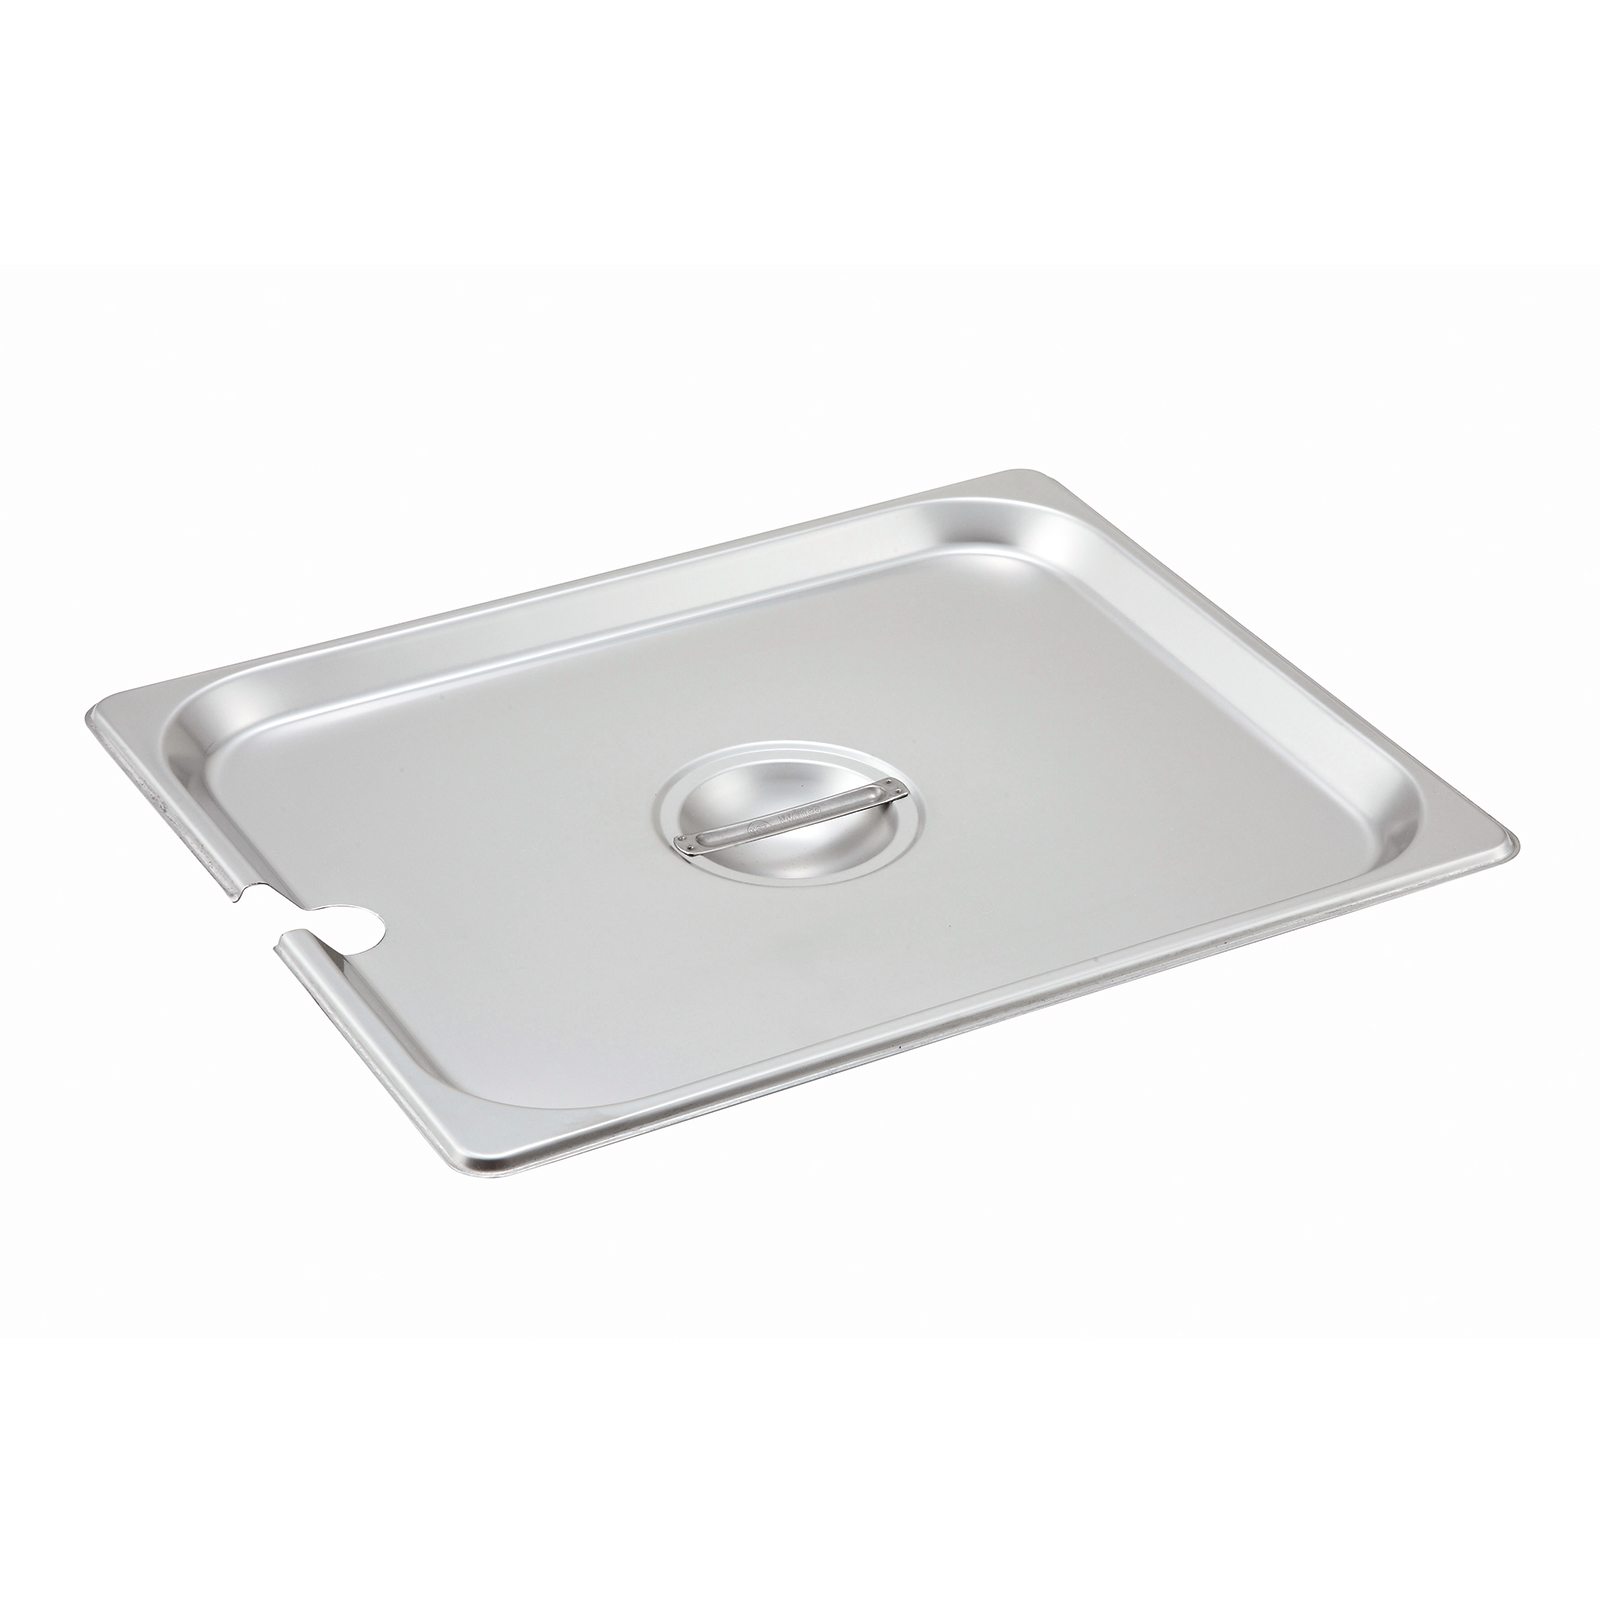 Winco SPCH steam table pan cover, stainless steel